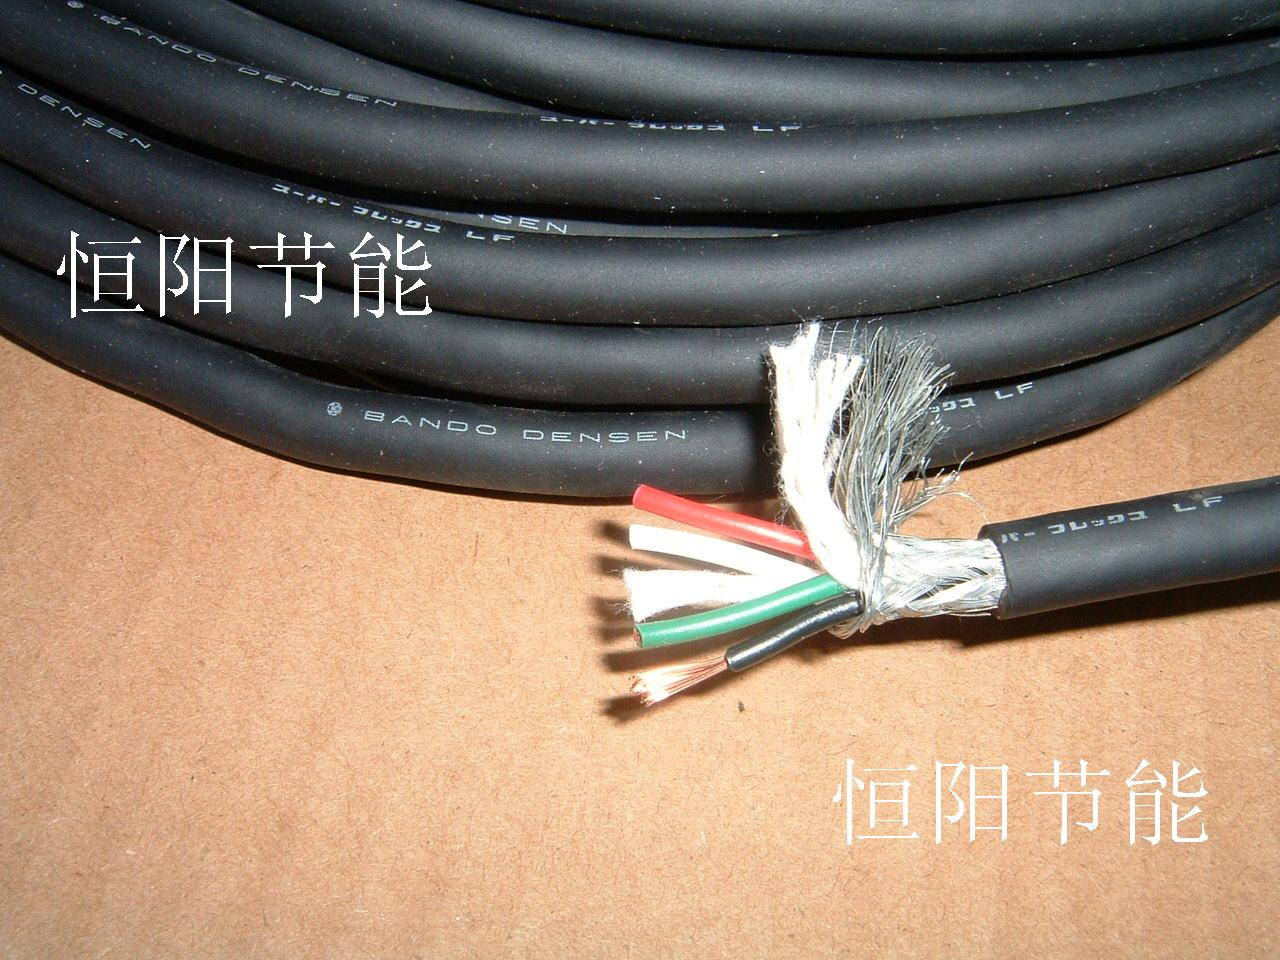 Usd 678 7 2 Imported Wire And Cable Japan Bando 4 Core 0 5 Square China Electric Electrical Copper Wires Shielded